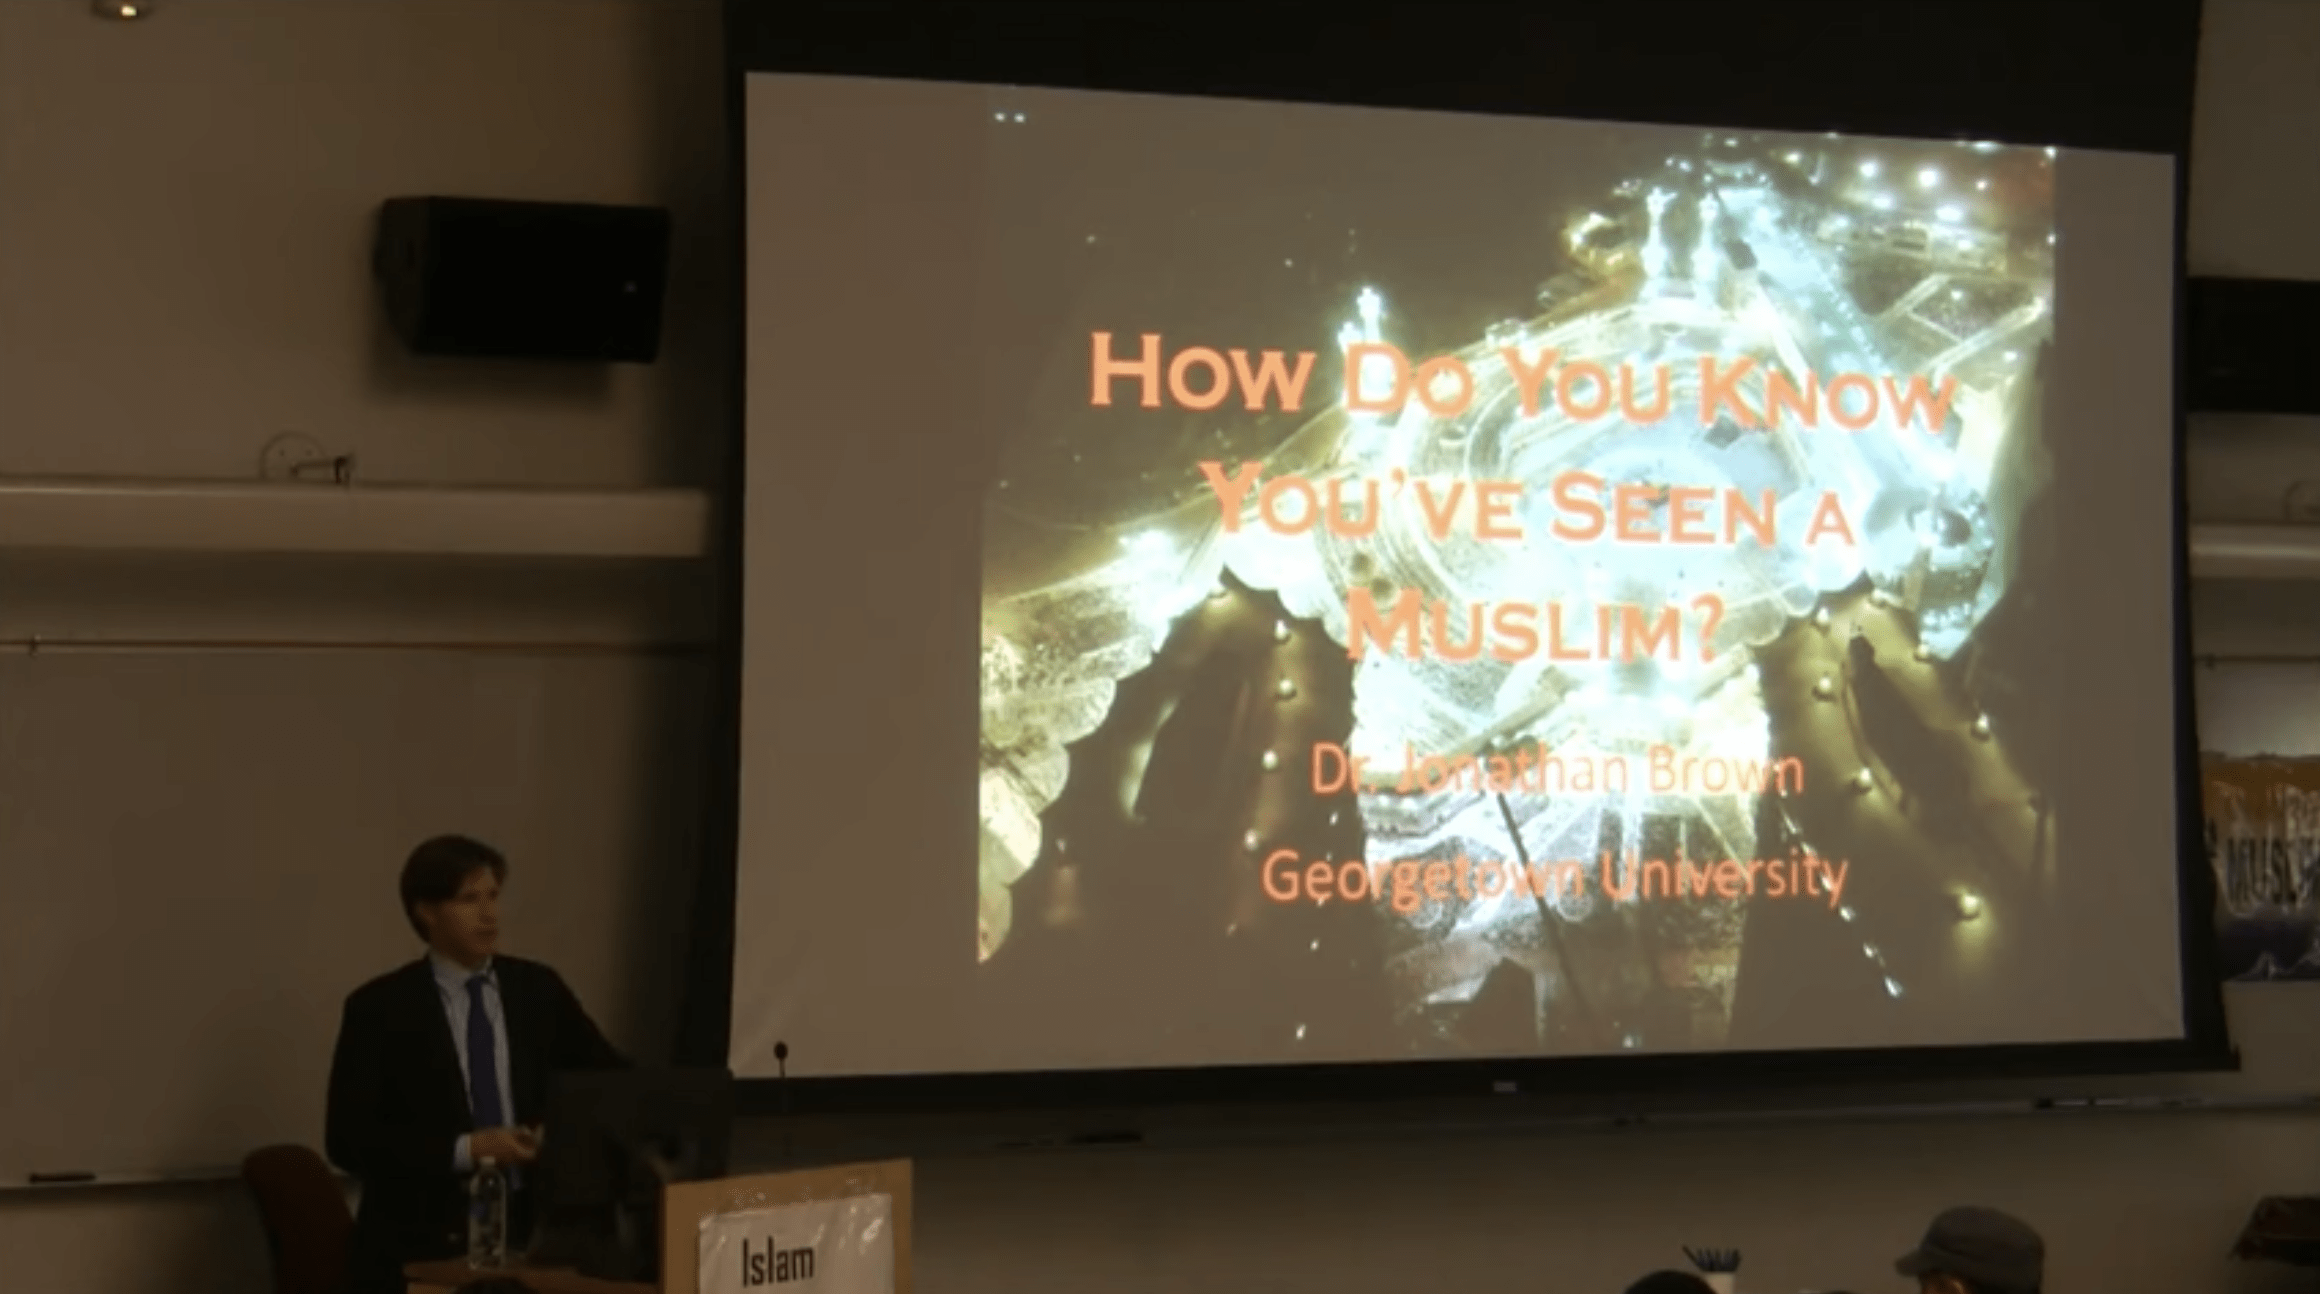 Jonathan Brown – Cultural & Artistic Diversity in the Muslim World